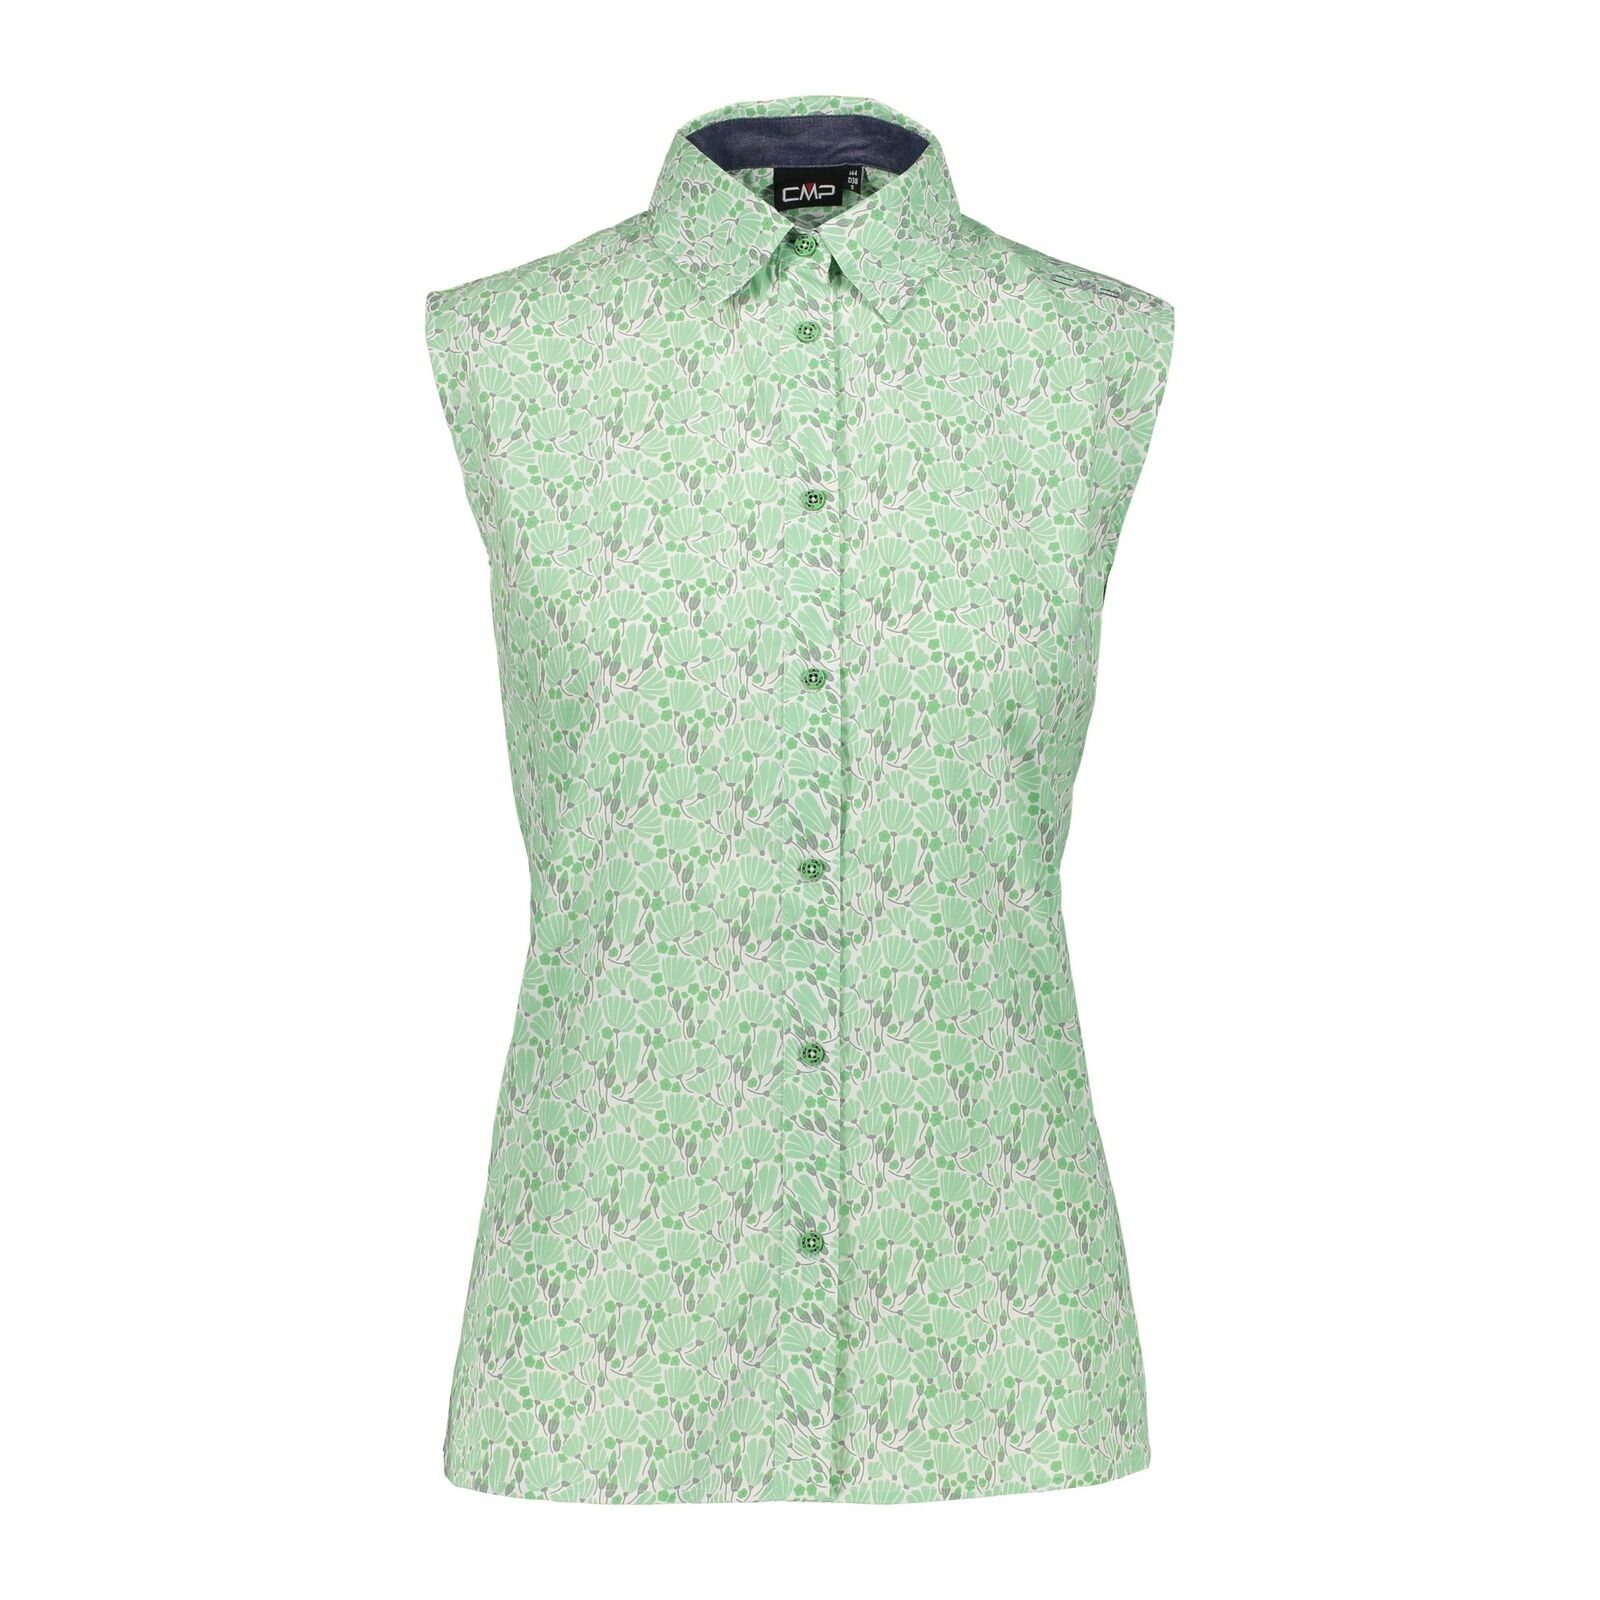 CMP Blouse Woman  Shirt Green Breathable Elastic Fast Drying  sale online